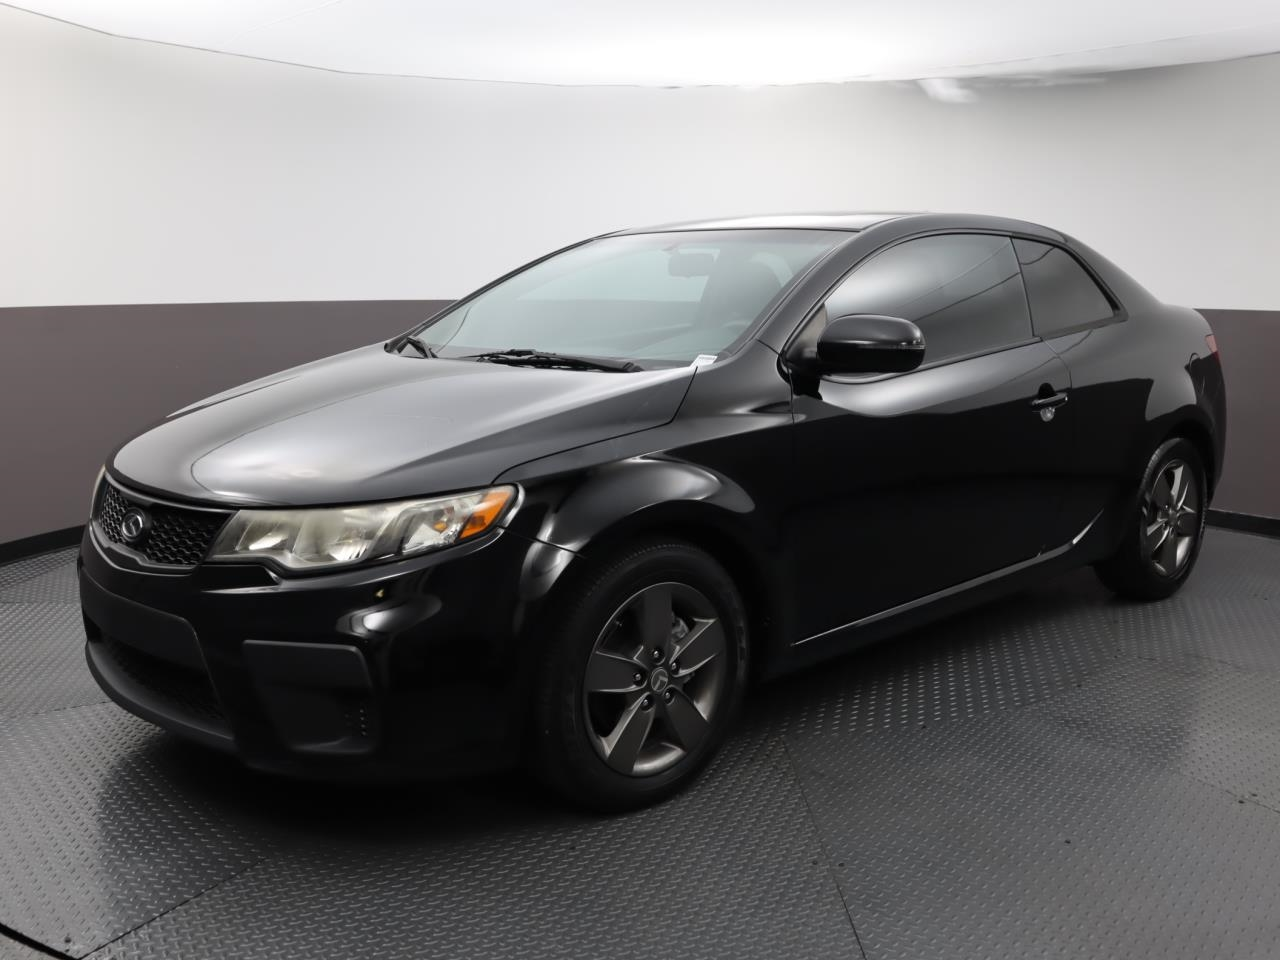 Used KIA FORTE-KOUP 2012 WEST PALM EX